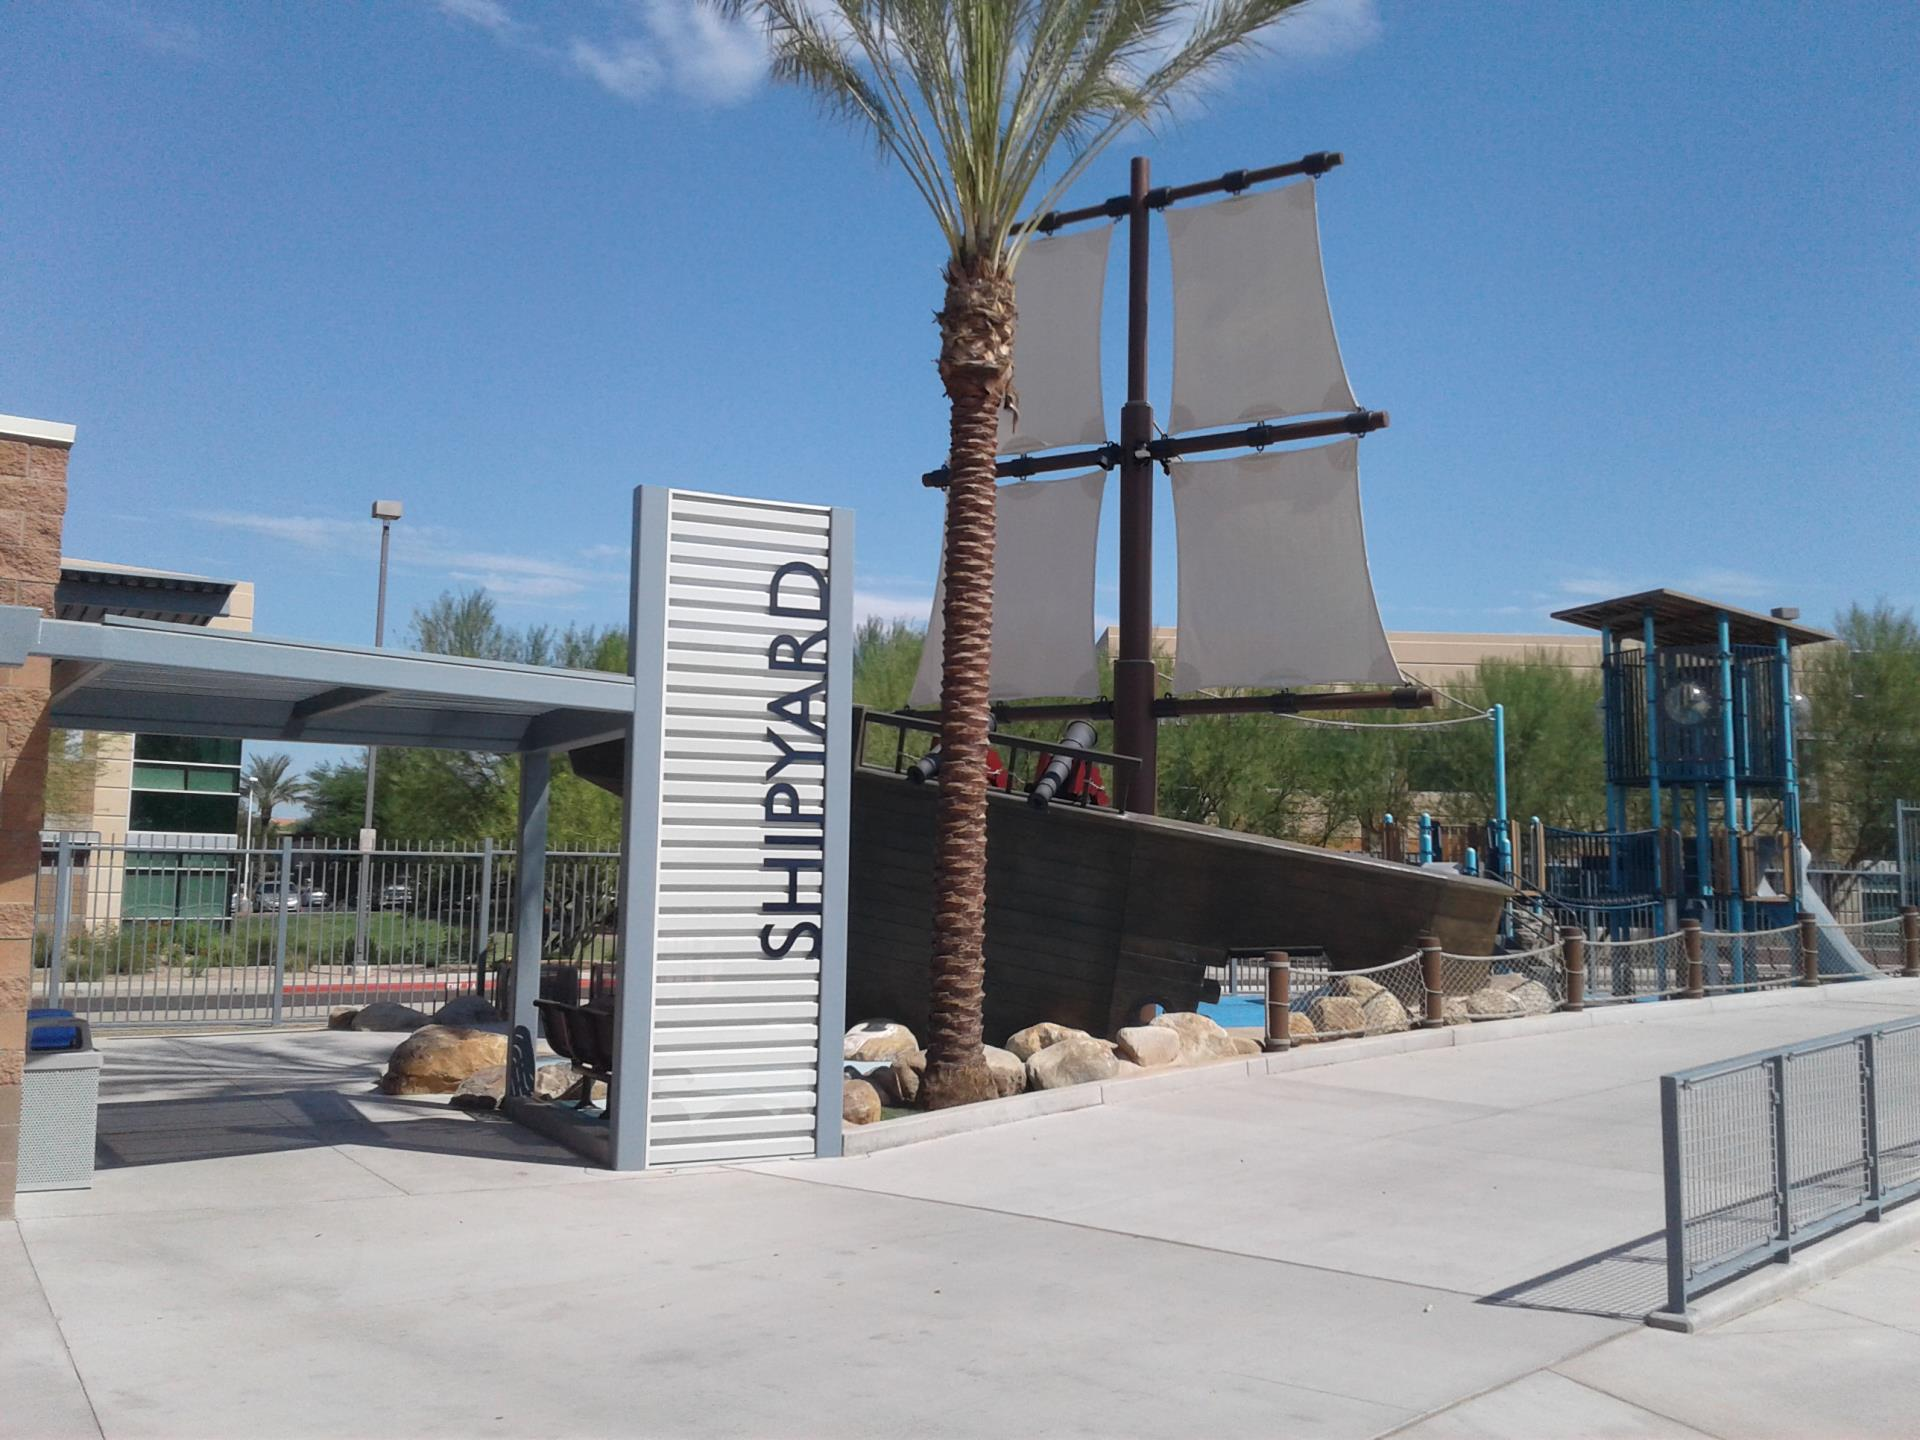 The Cove at Peoria Sports Complex